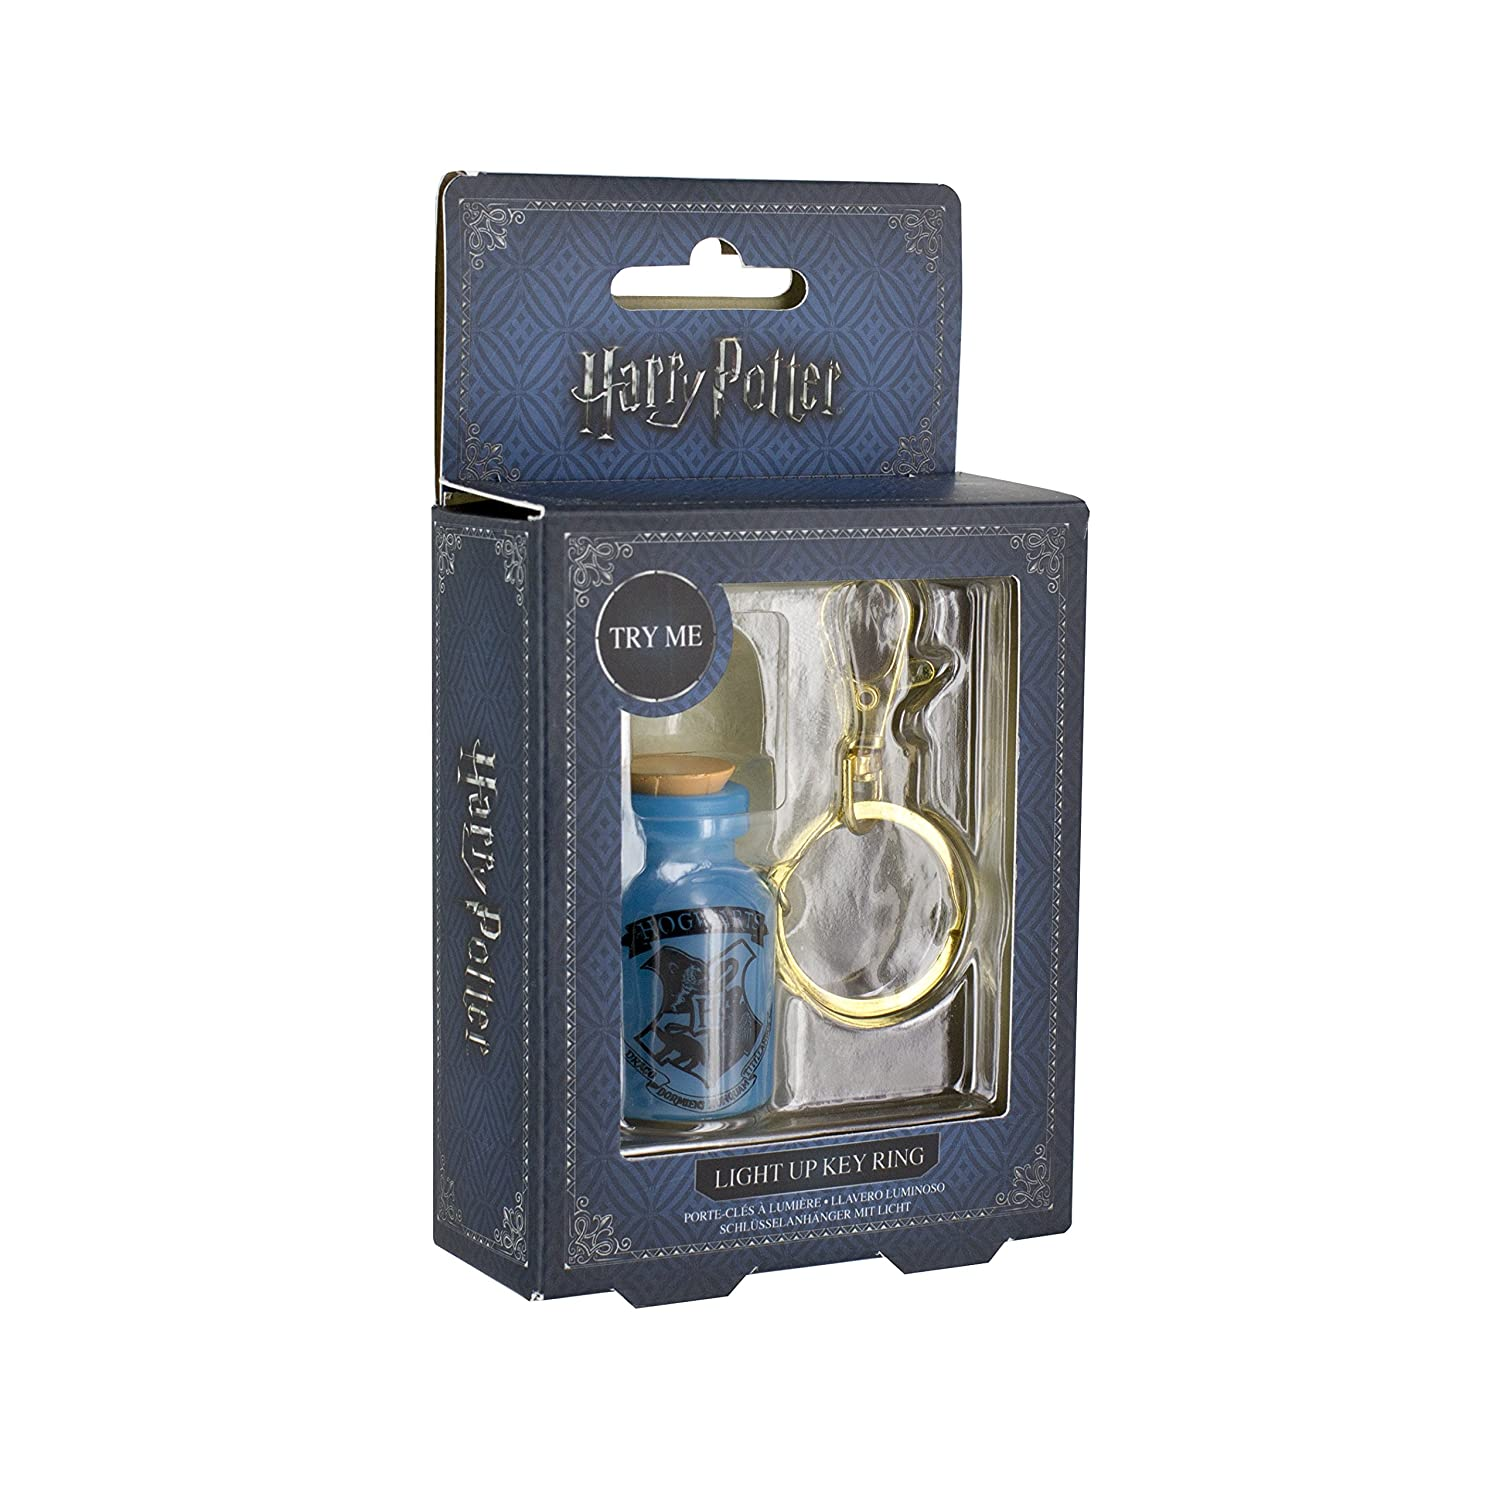 Amazon.com: Paladone Harry Potter Light up Potion Bottle ...